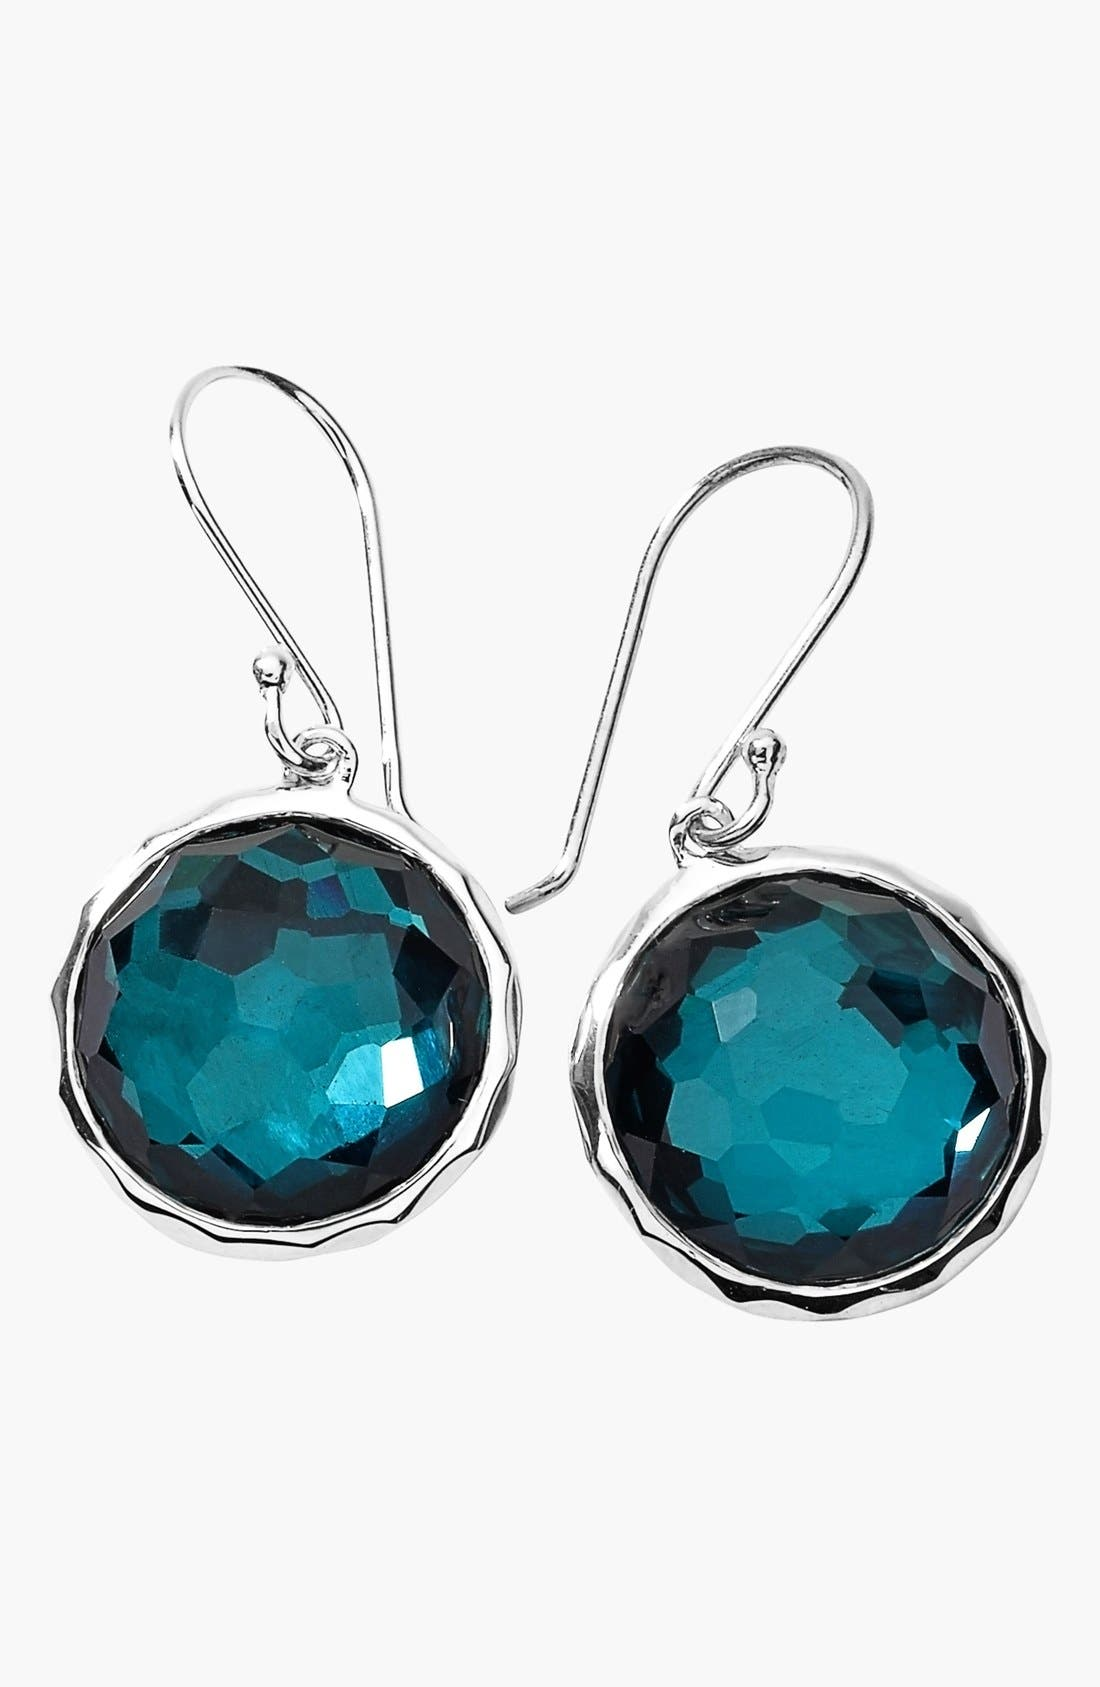 Alternate Image 1 Selected - Ippolita 'Wonderland - Lollipop' Drop Earrings (Nordstrom Exclusive)